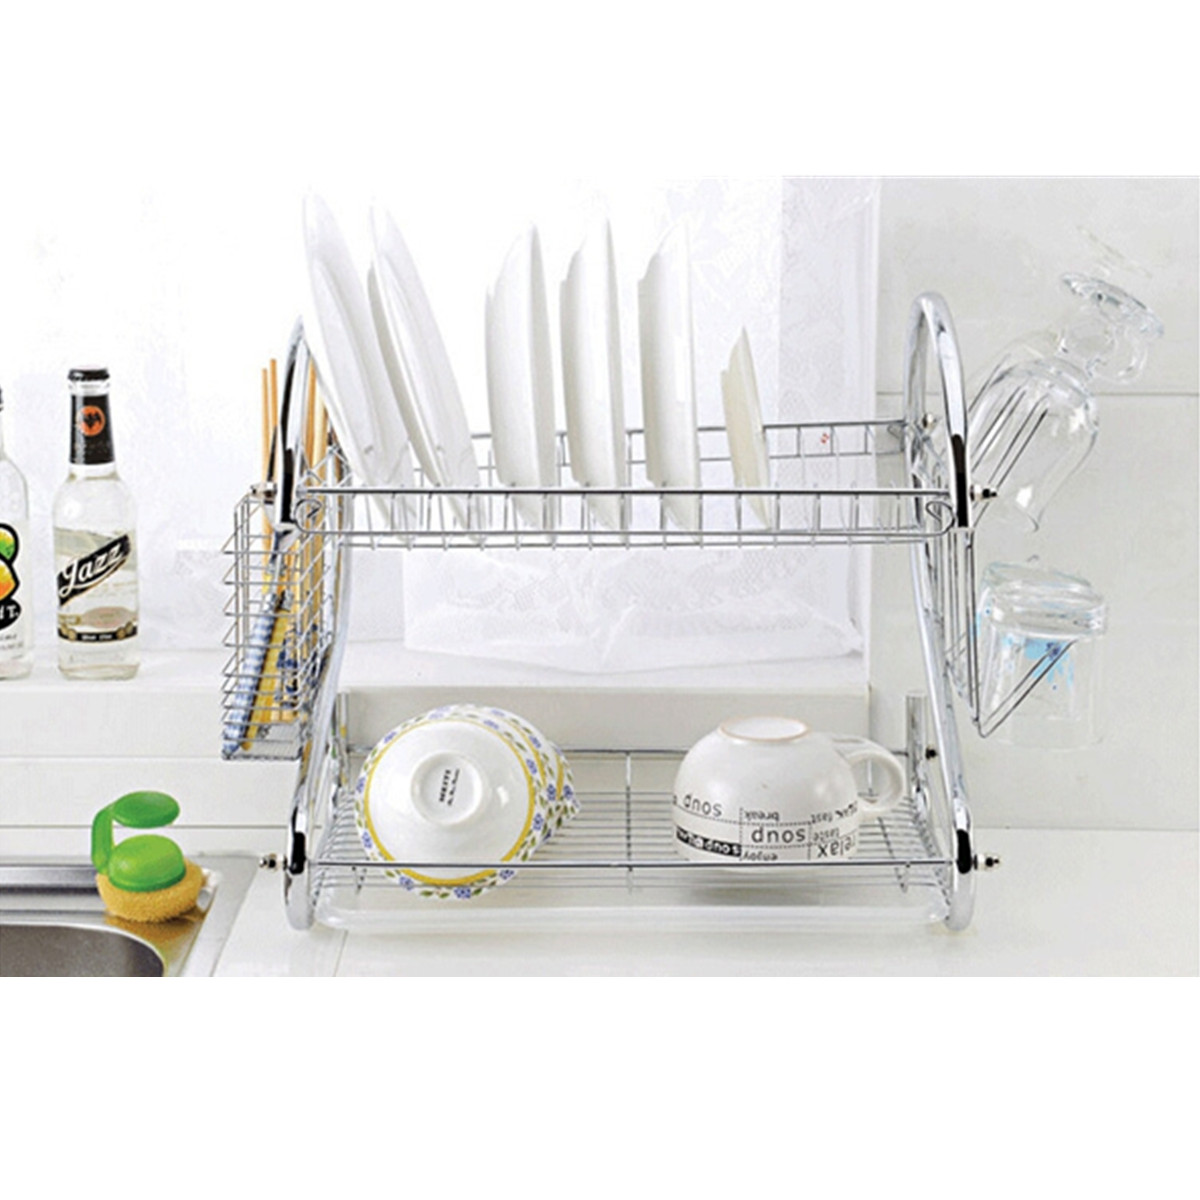 Stainless steel dish rack 2 tier space saver dish Small stainless steel dish drying rack